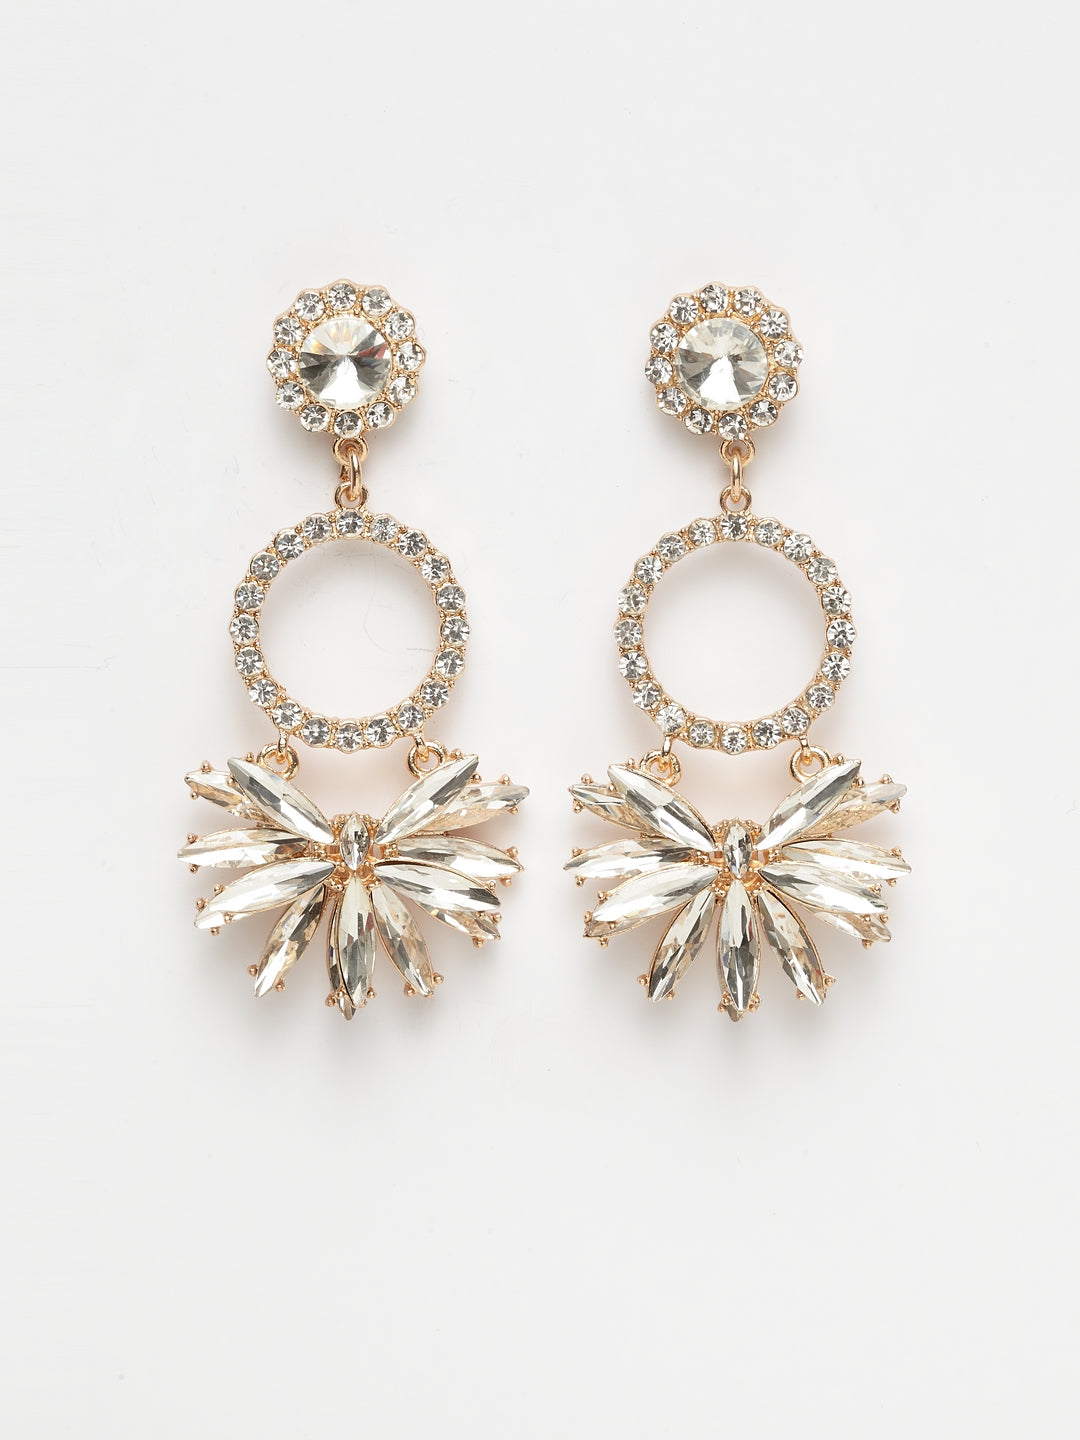 Avant-Garde Paris Gold Plated Crystals Statement Earrings